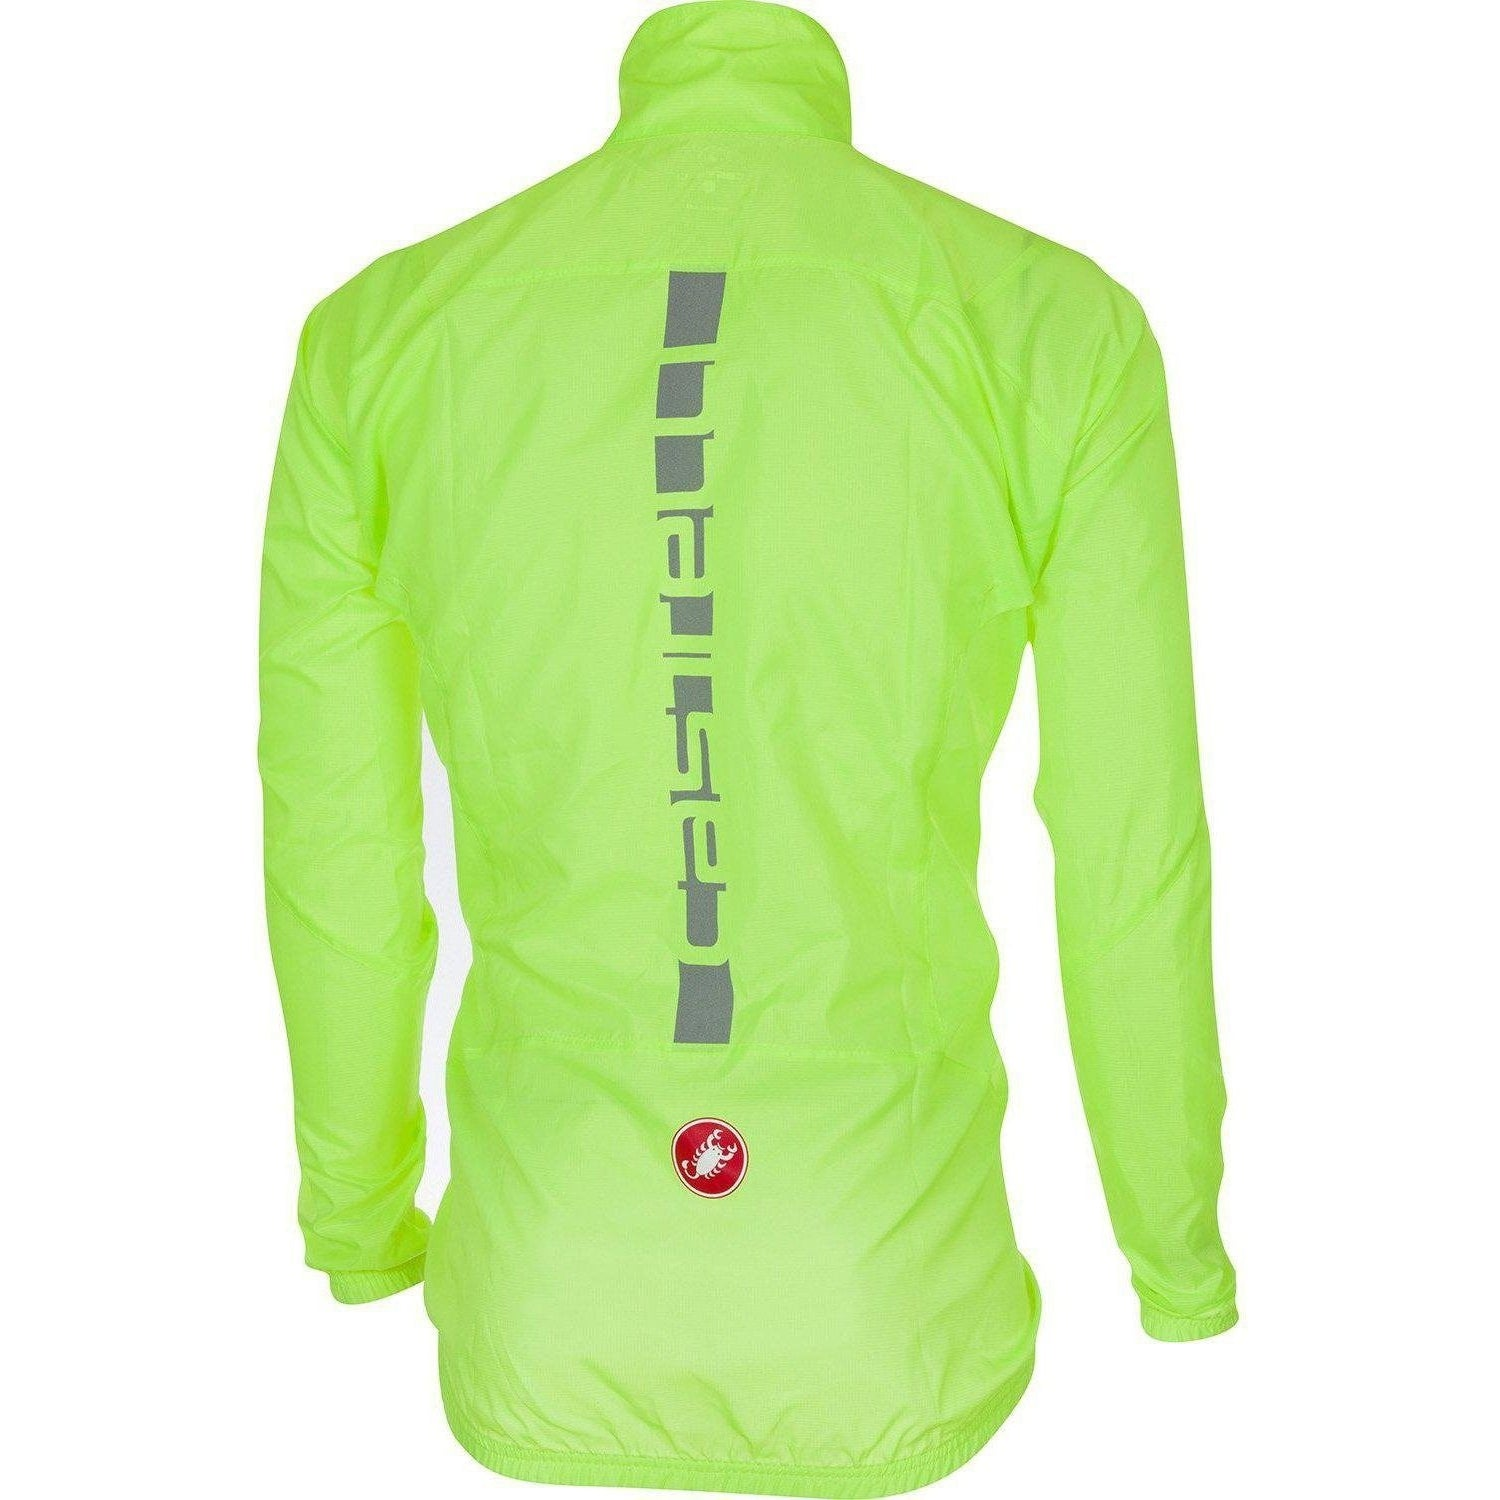 Castelli-Castelli Squadra ER Jacket--saddleback-elite-performance-cycling